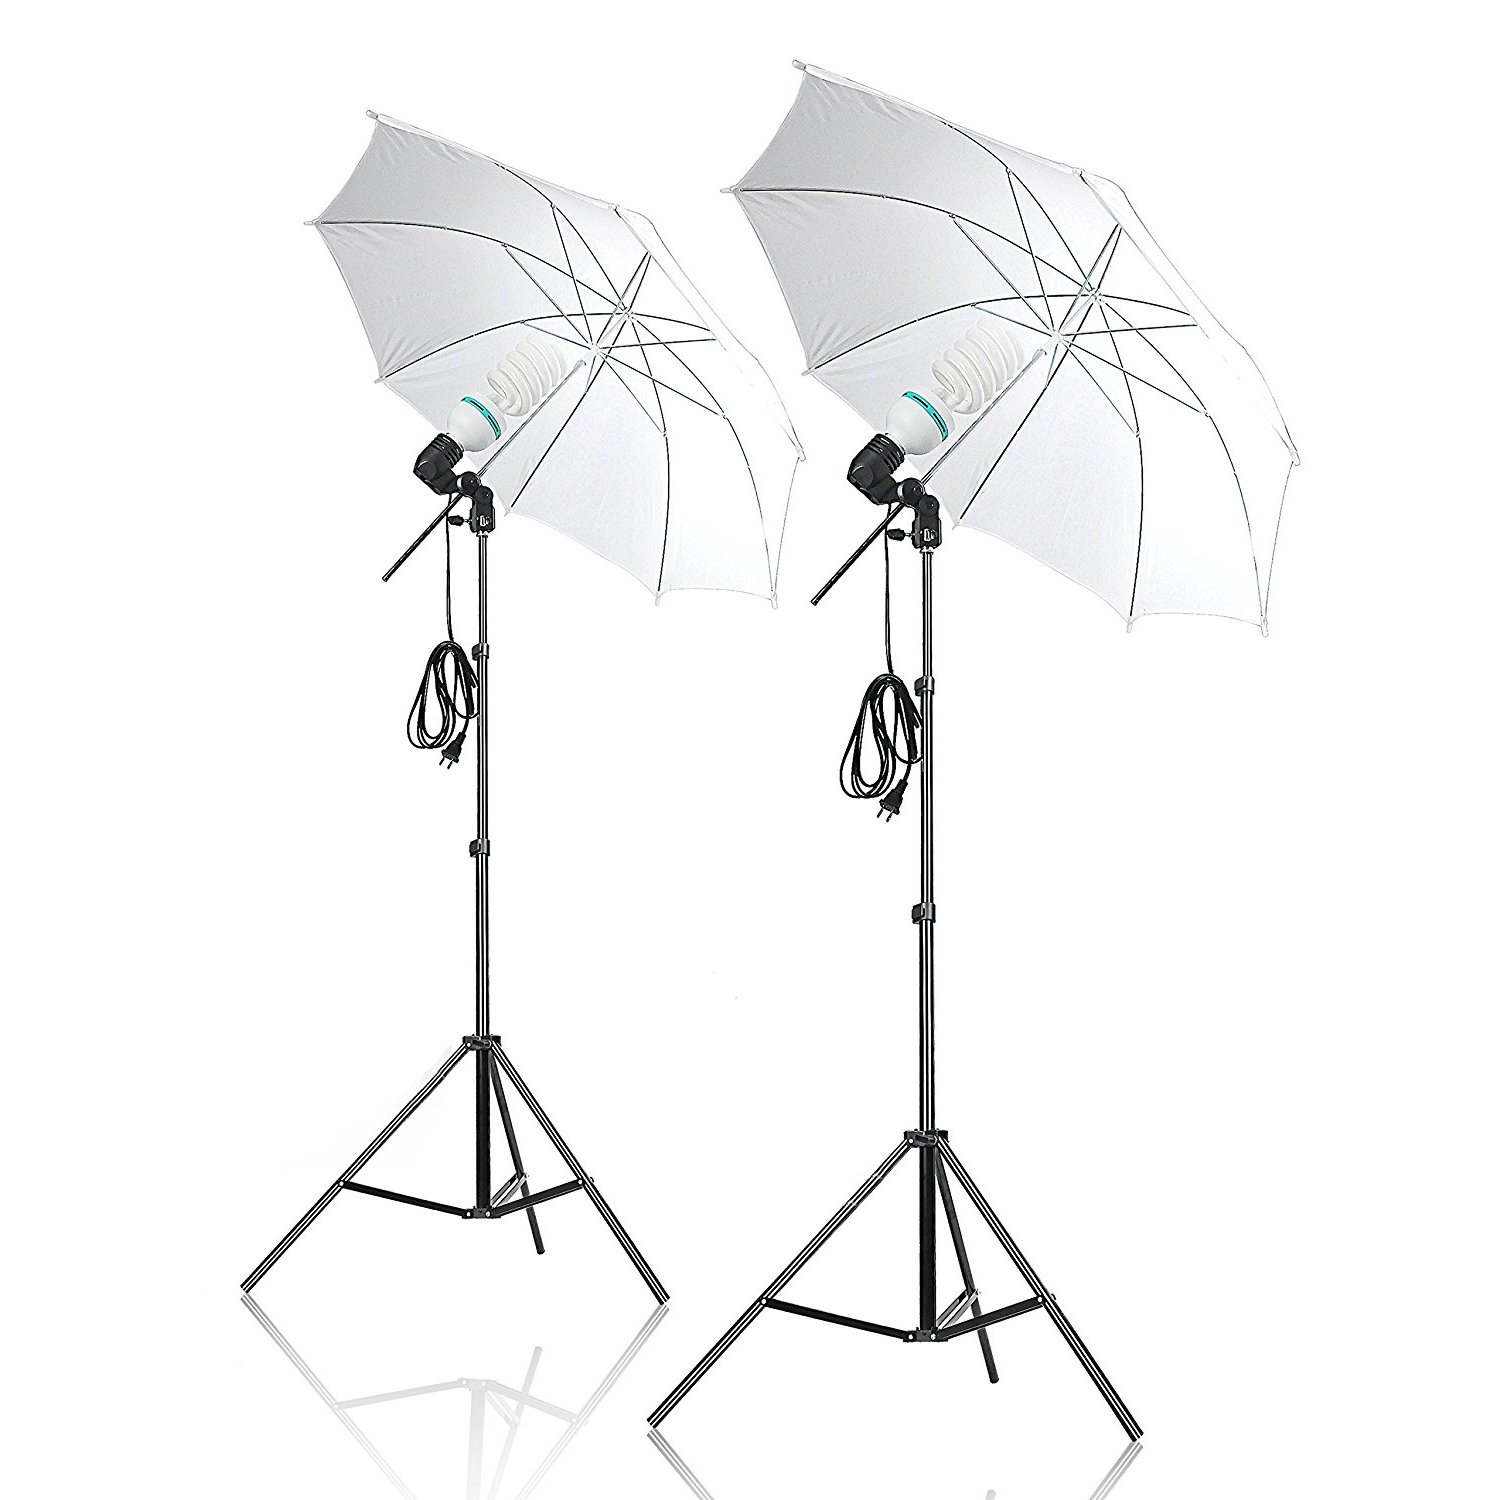 Selens 1200W Continuous photo Umbrella Lighting Kit for Portrait Photography, Studio and Video Shooting, Translucent White, pack of 2